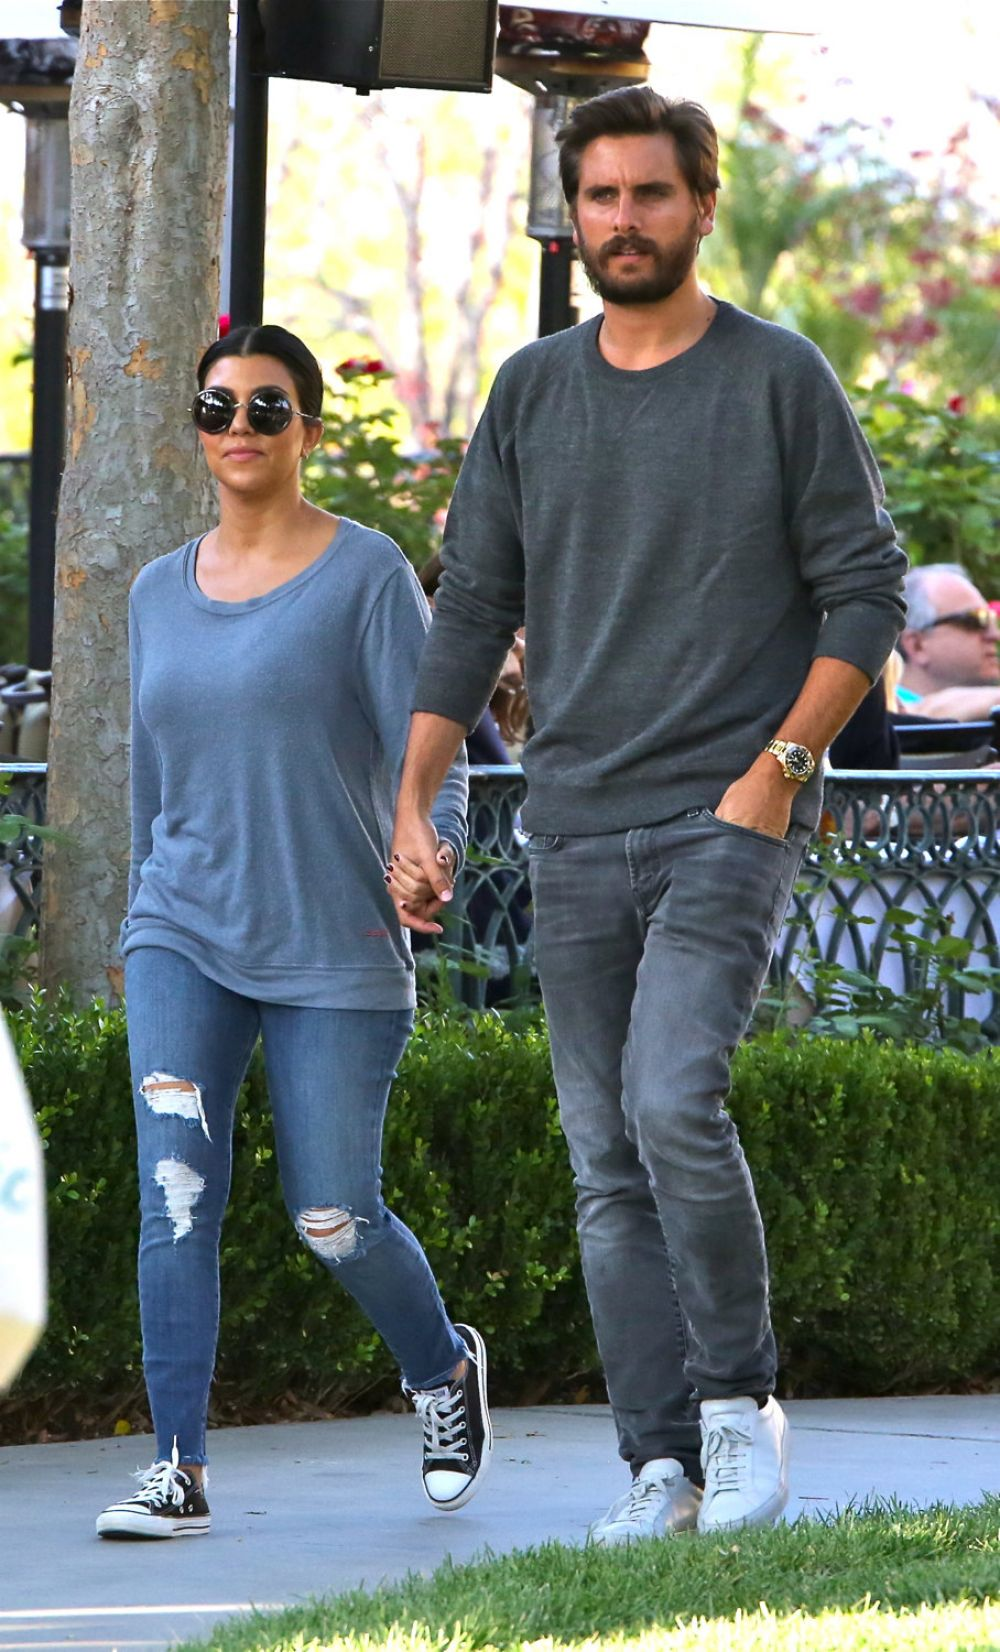 kourtney-kardashian-and-scott-disick-out-for-dinner-in-calabasas_4 –  HawtCelebs